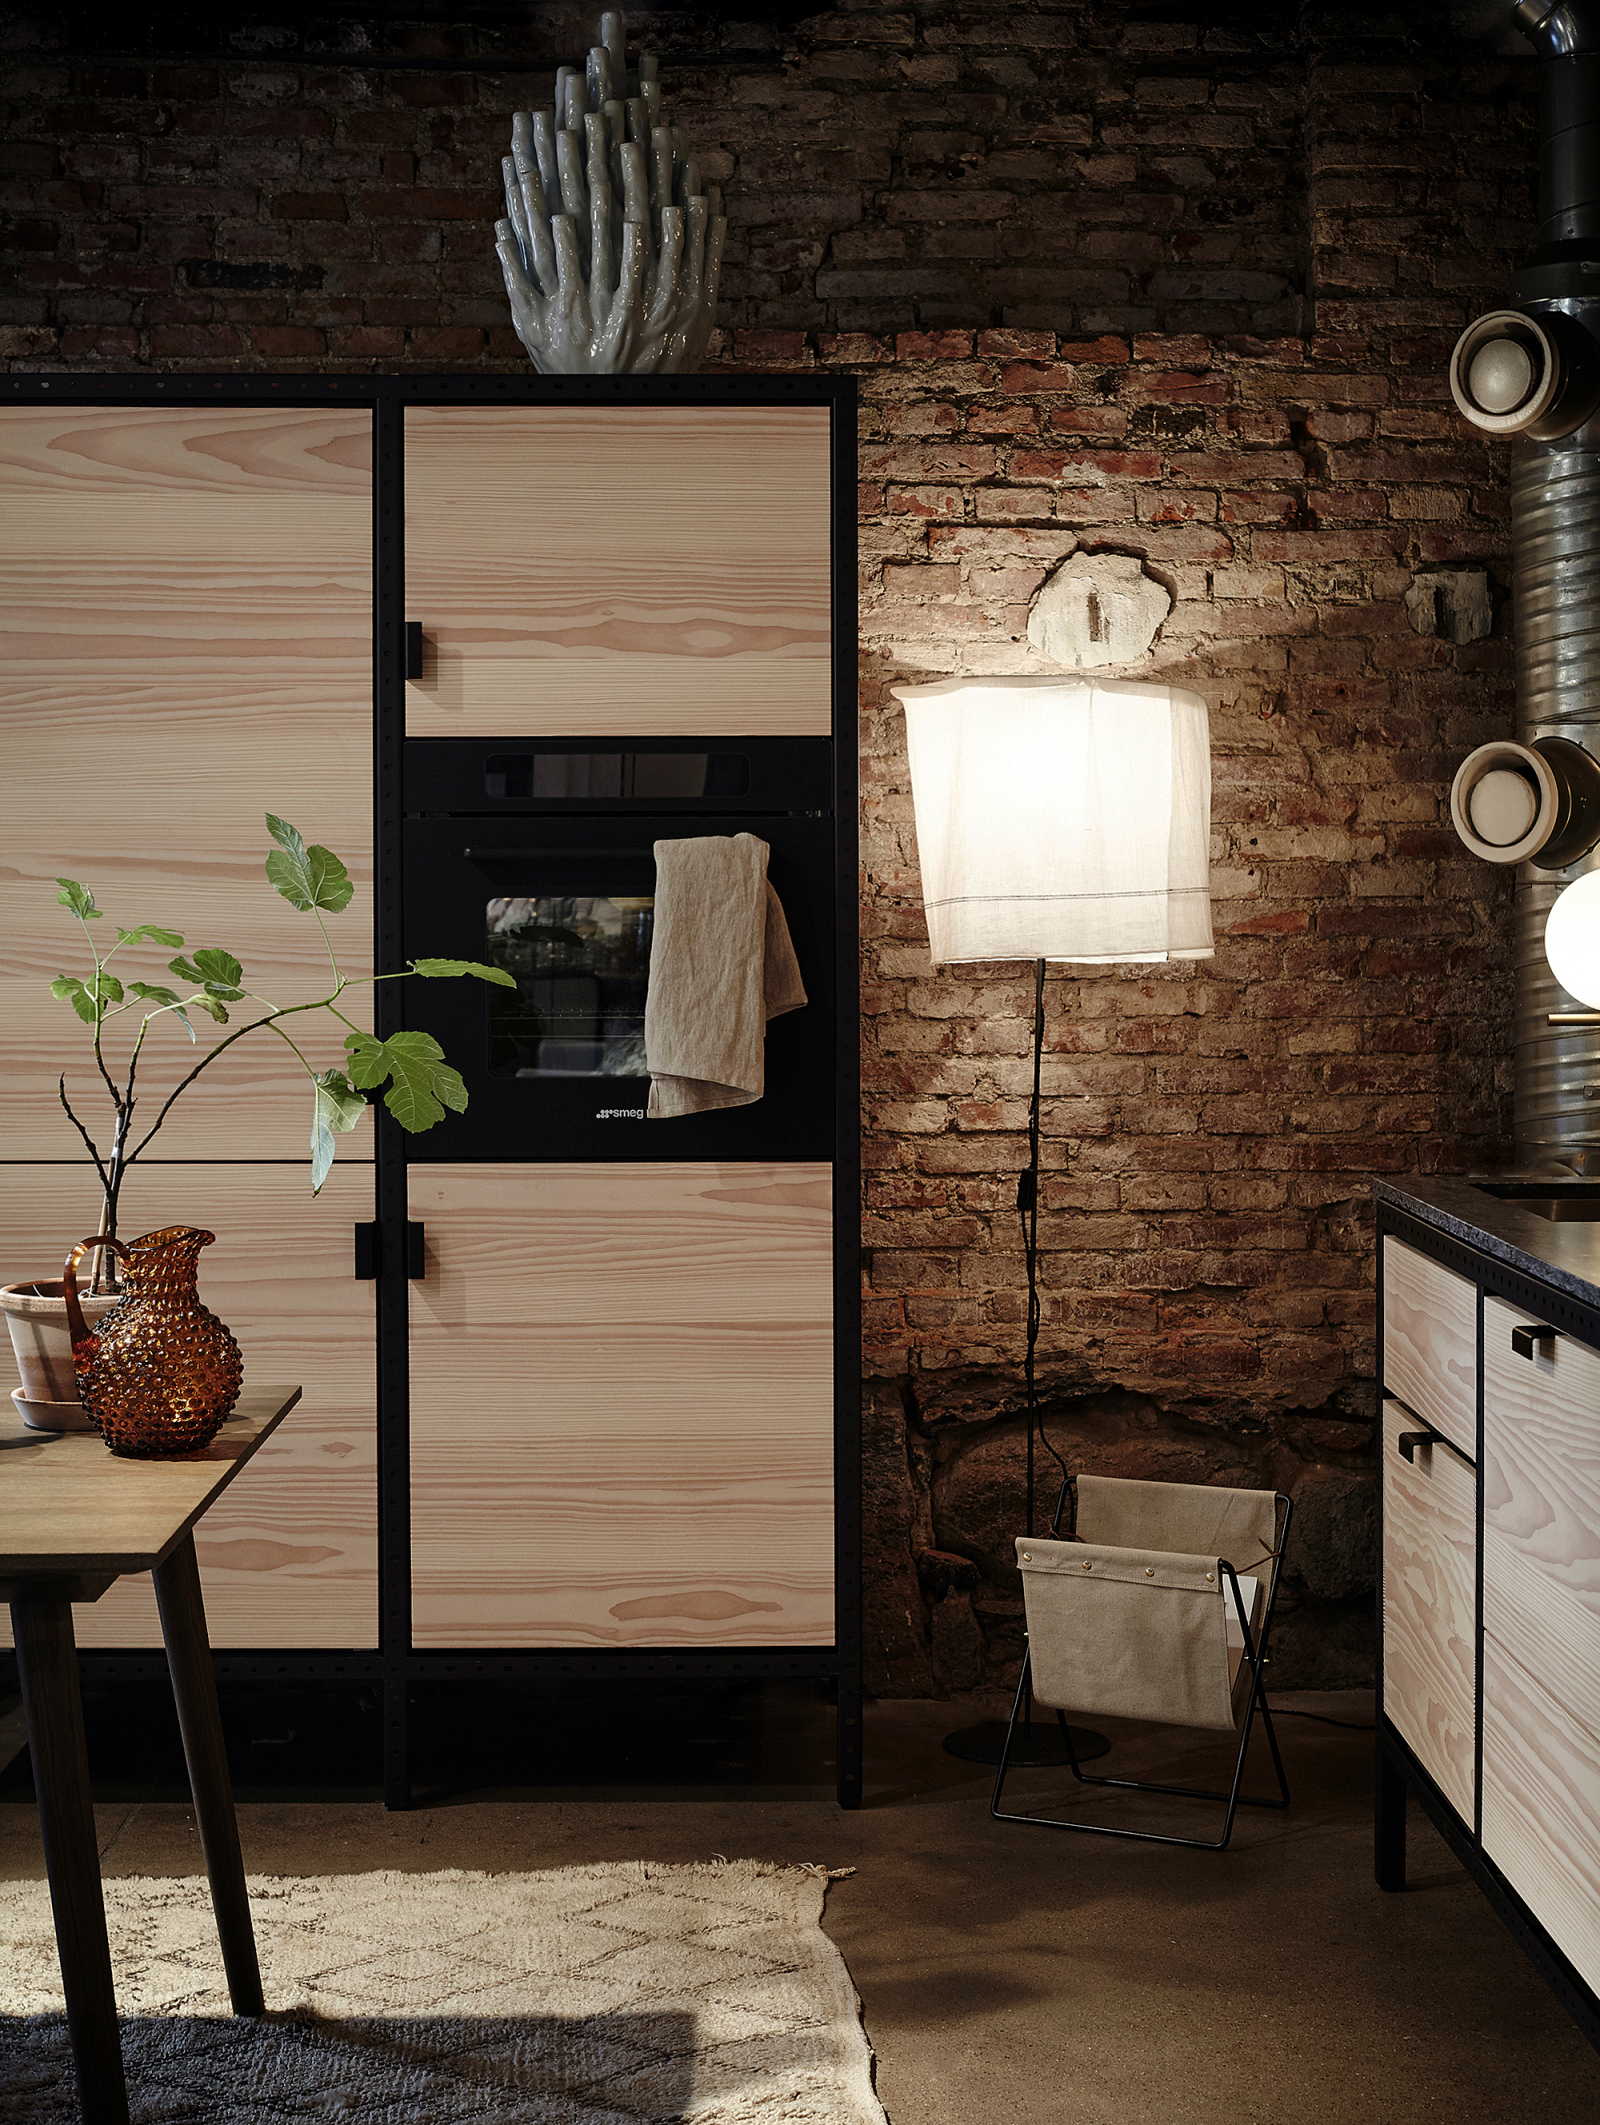 The Frama Kitchen portrays the light expression of a piece of furniture within the kitchen environment